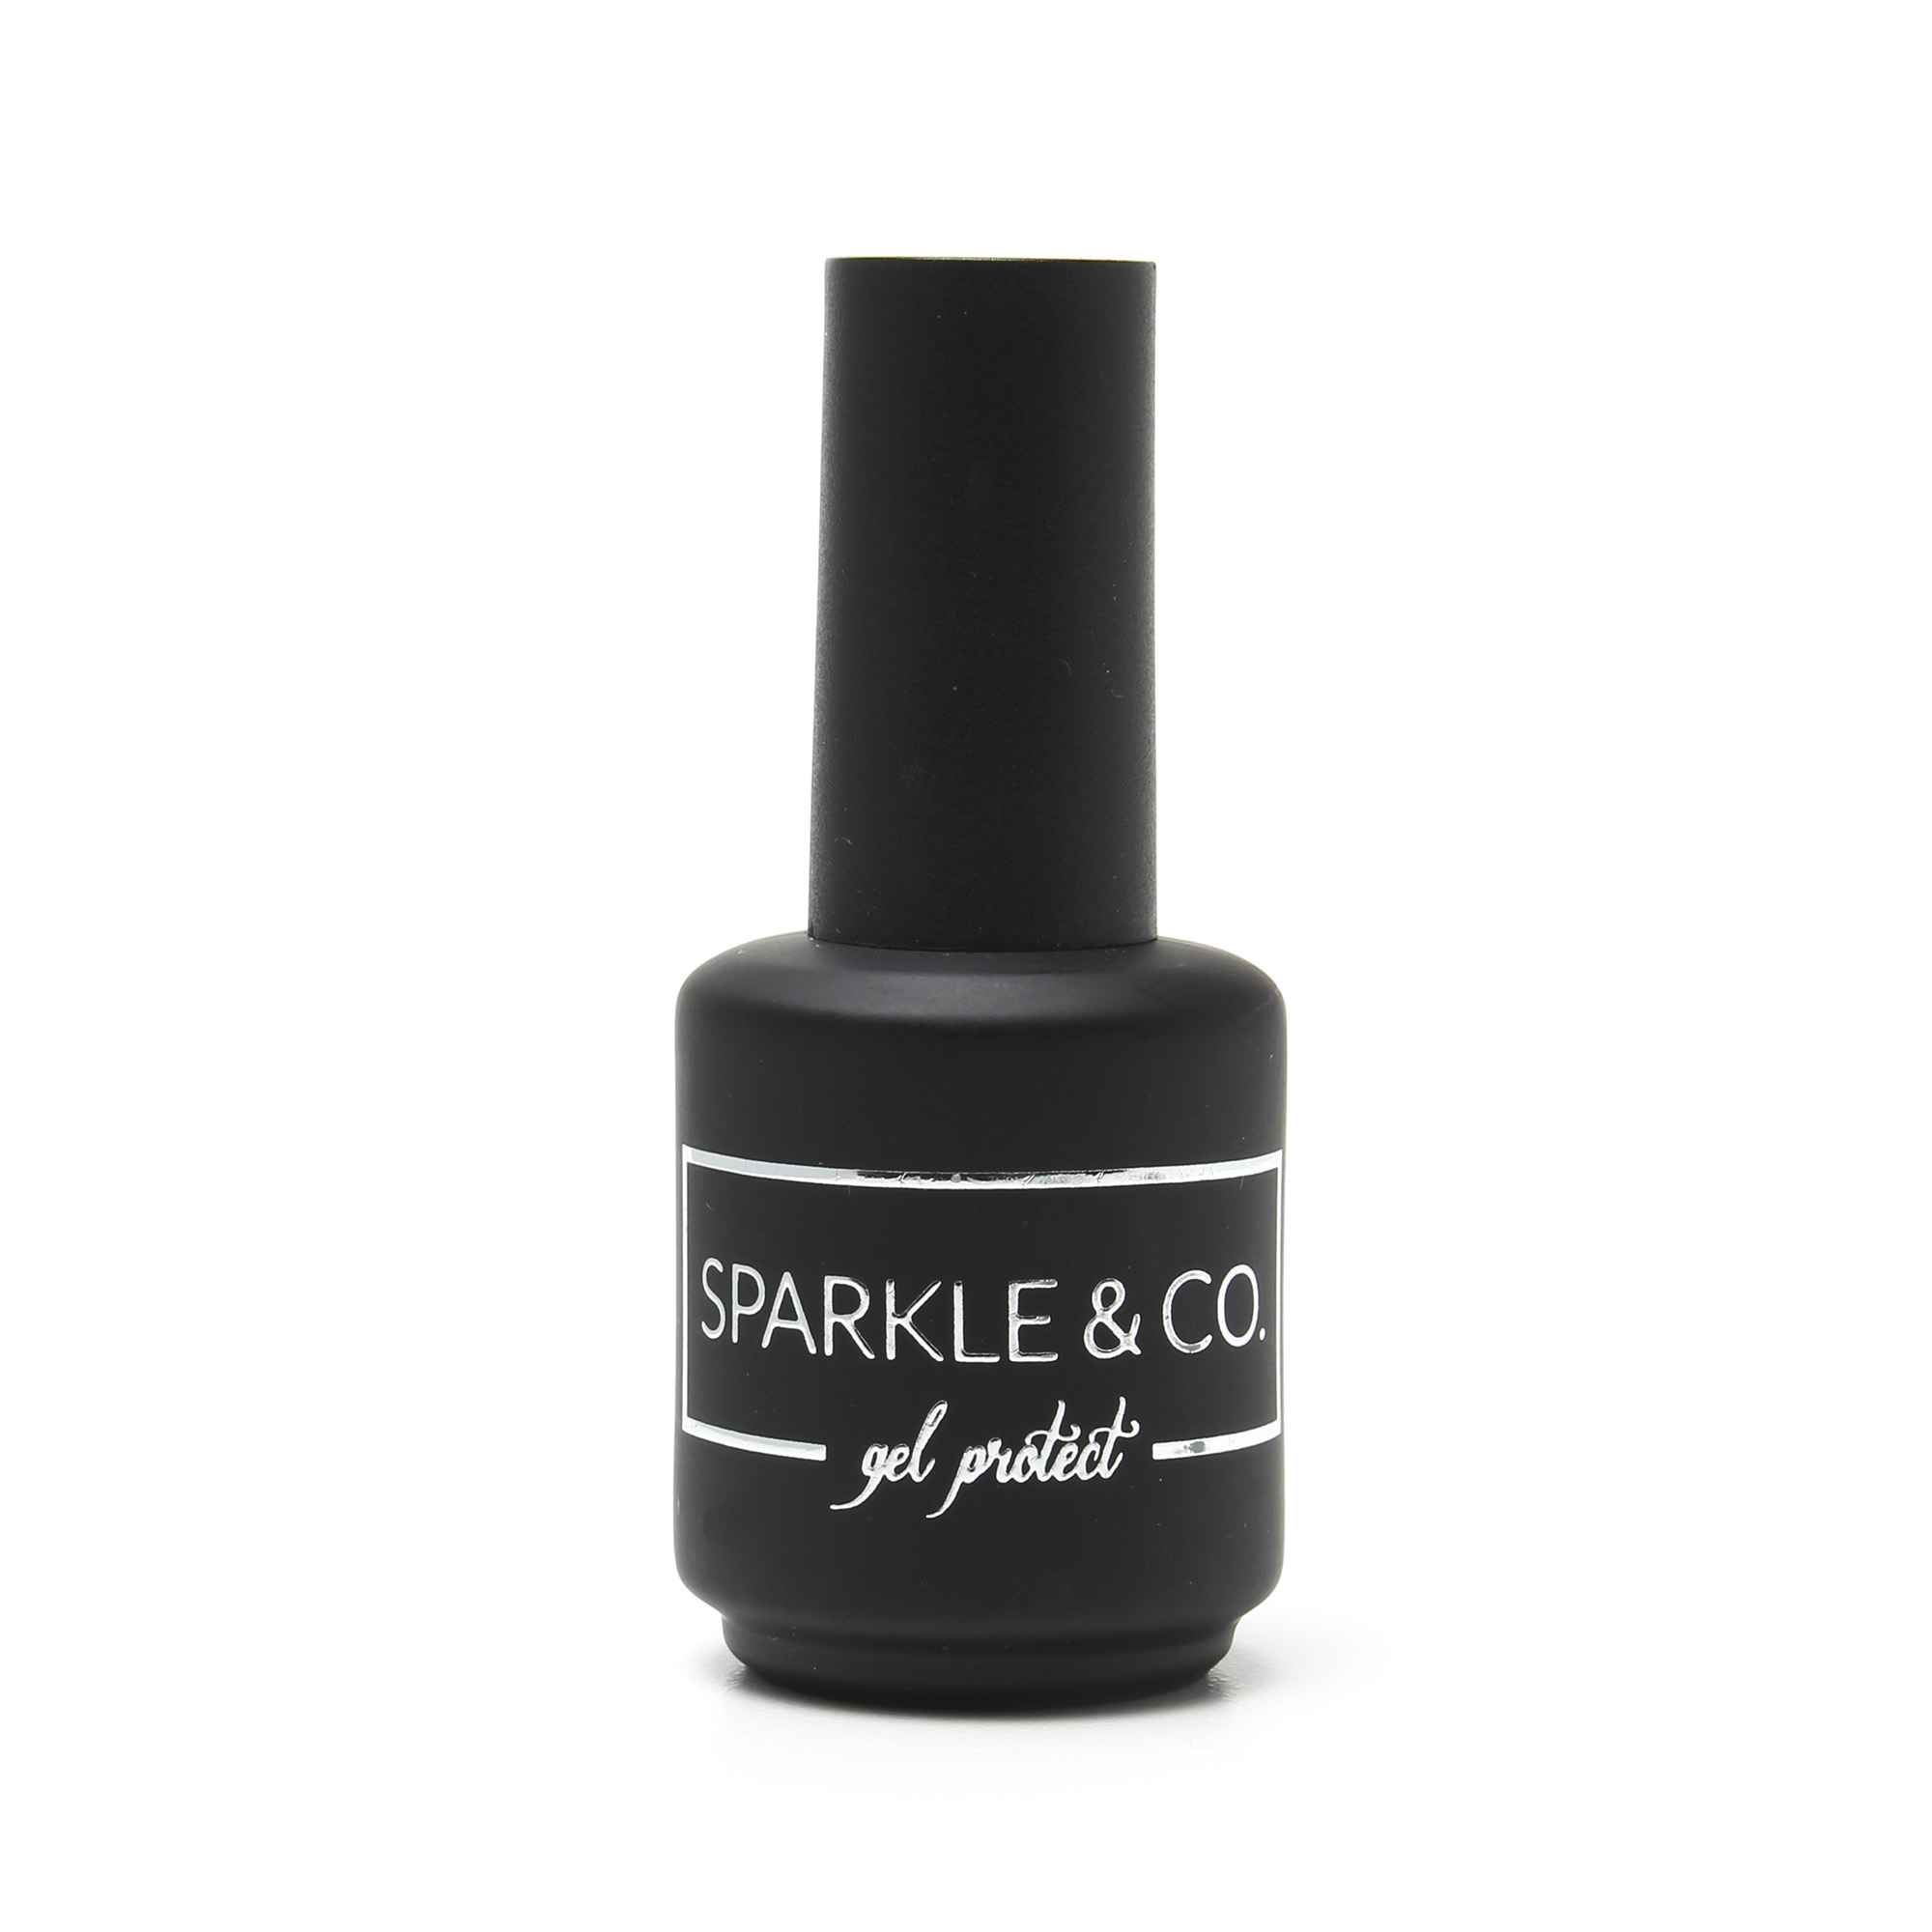 Sparkle & Co. Gel Protect/Strengthening Gel- 15ml